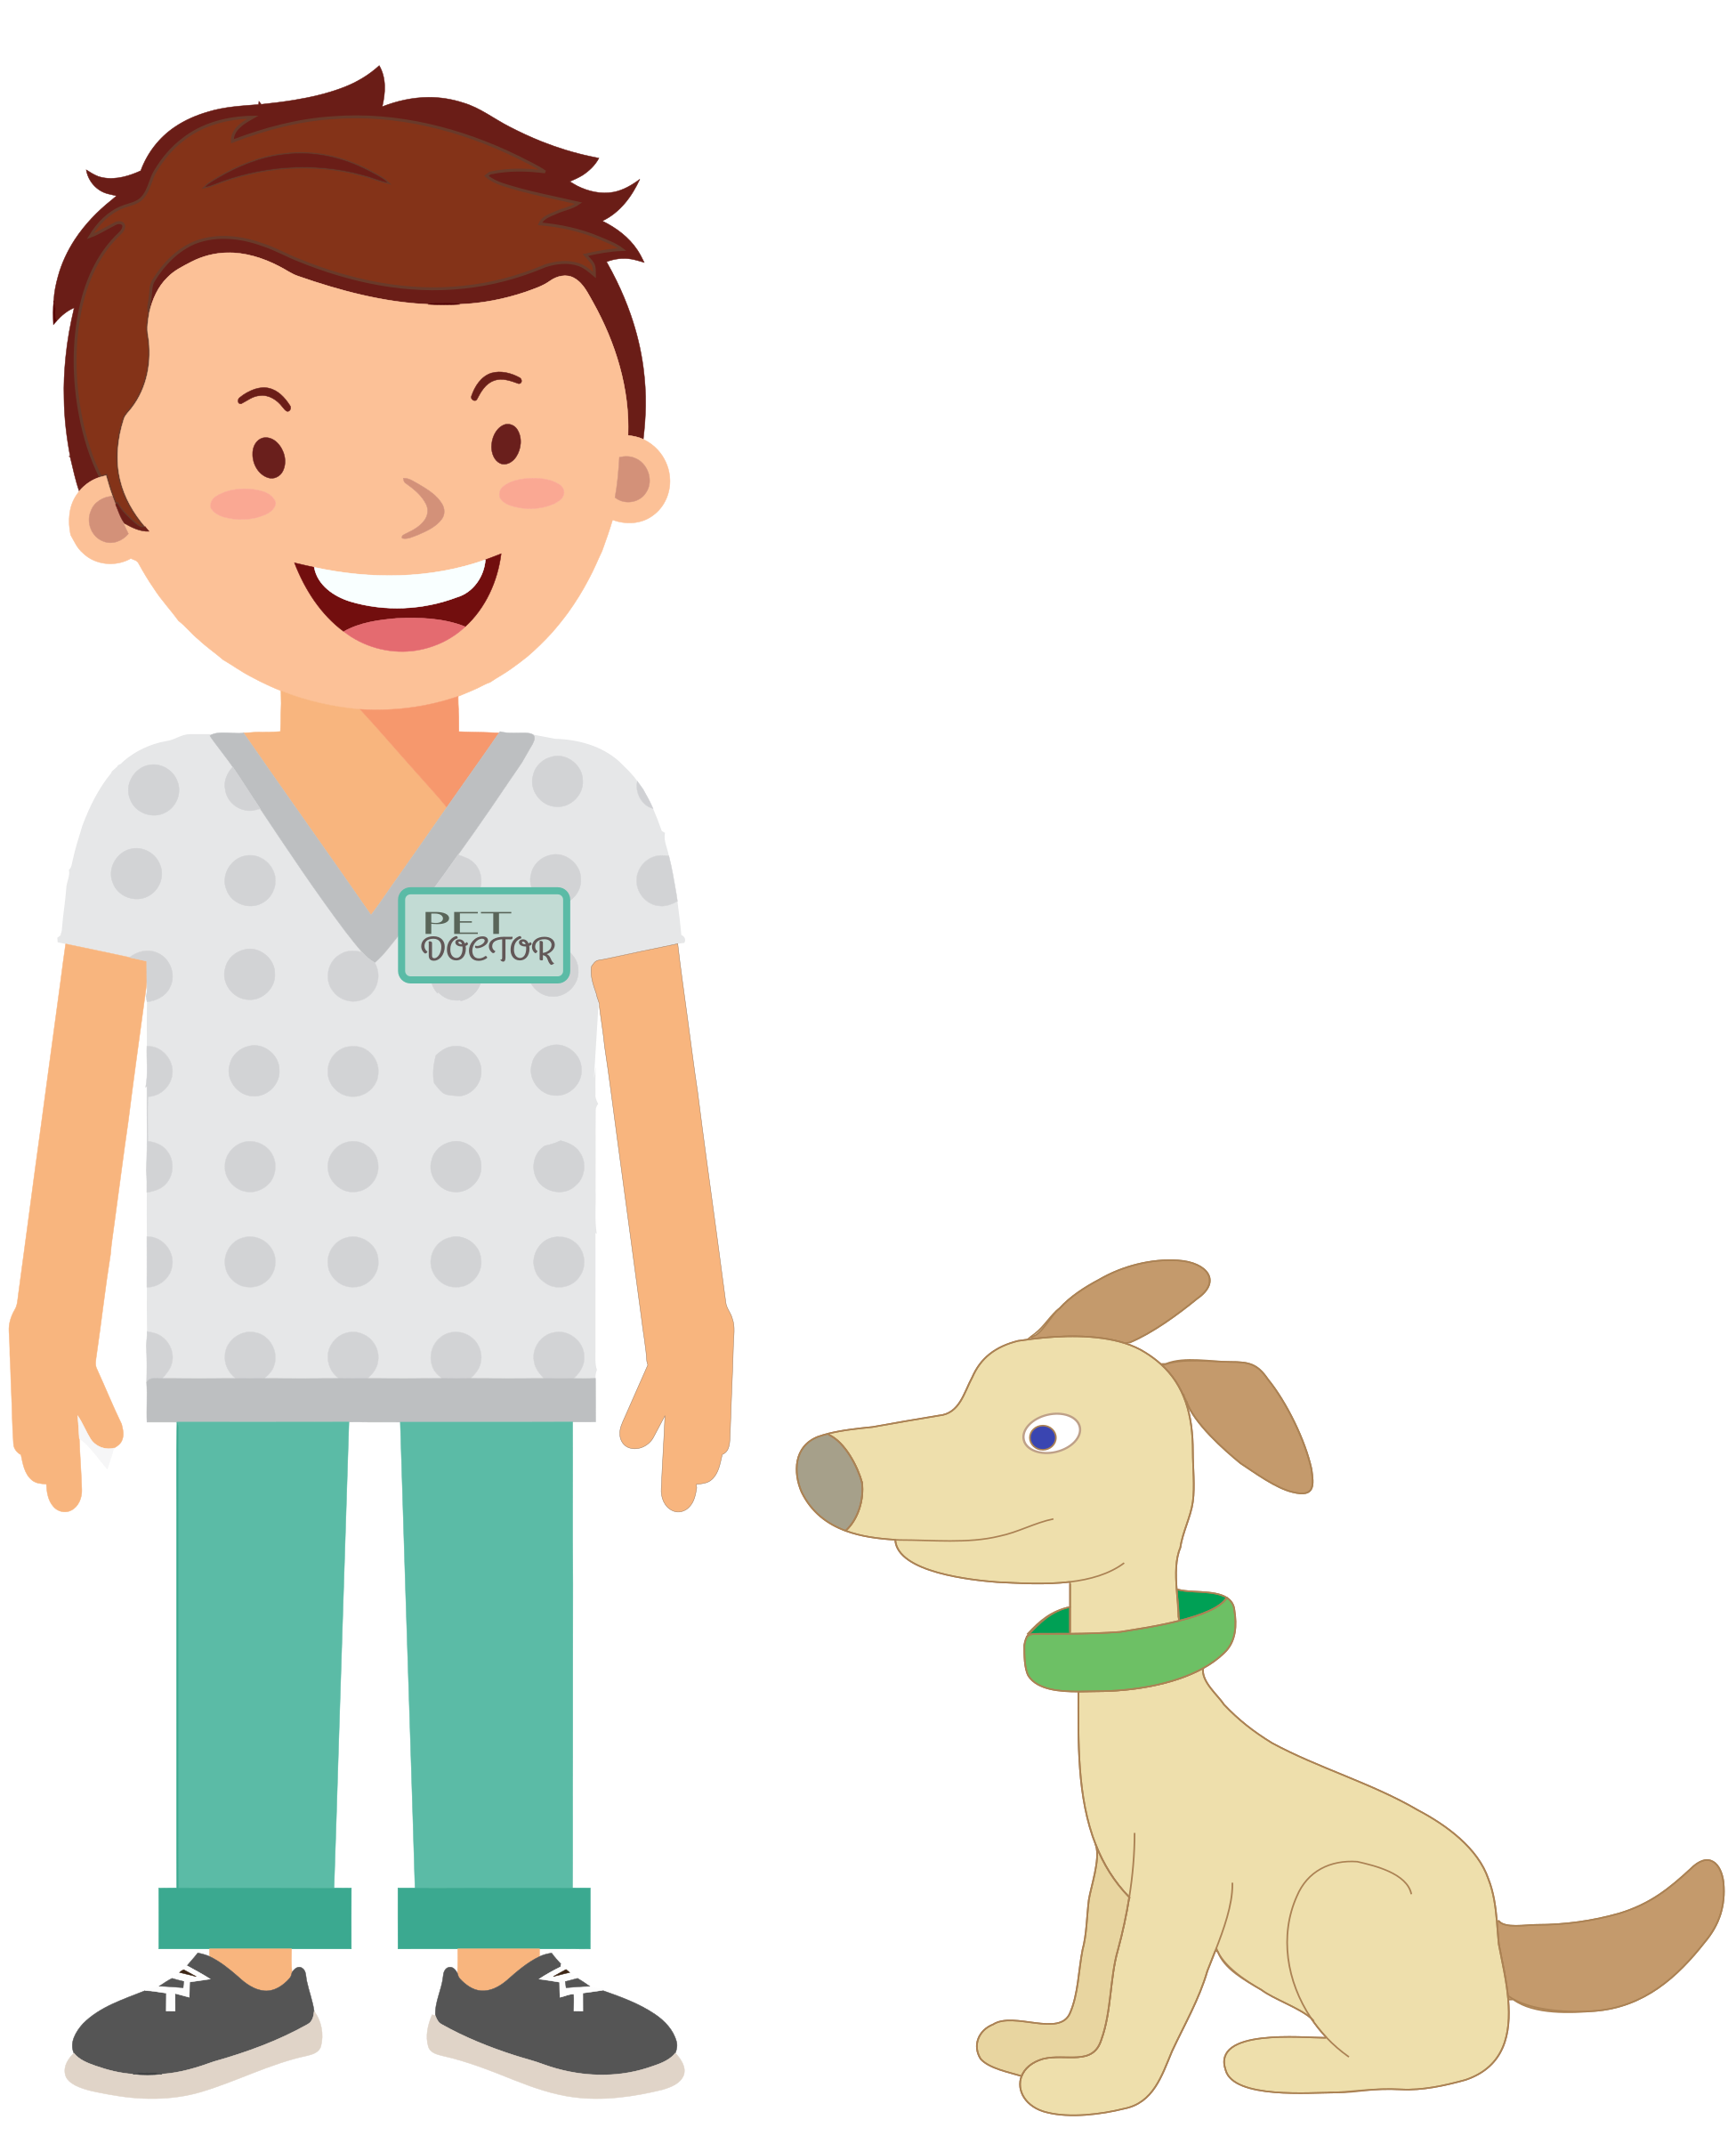 Dog doctor clipart svg freeuse stock Clipart - Happy Veterinarian svg freeuse stock